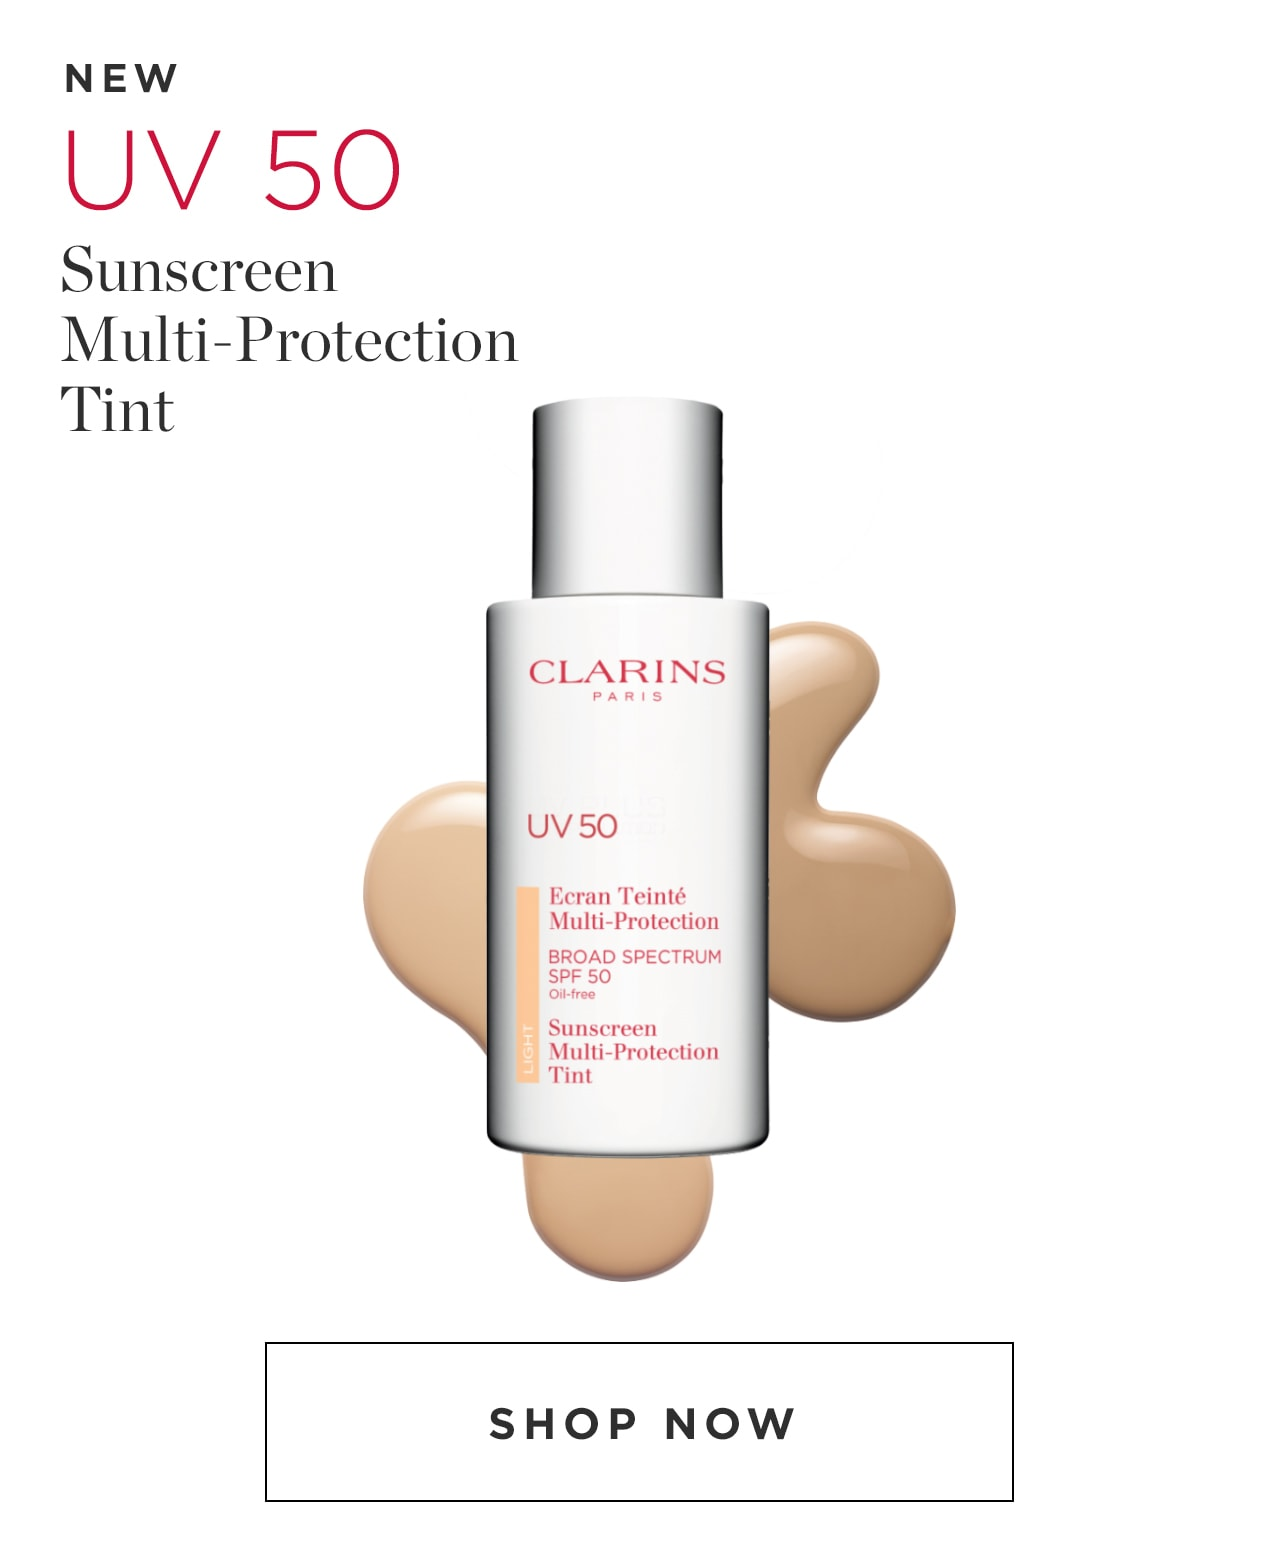 UV50 Sunscreen Multi-Protection Tint Shop Now